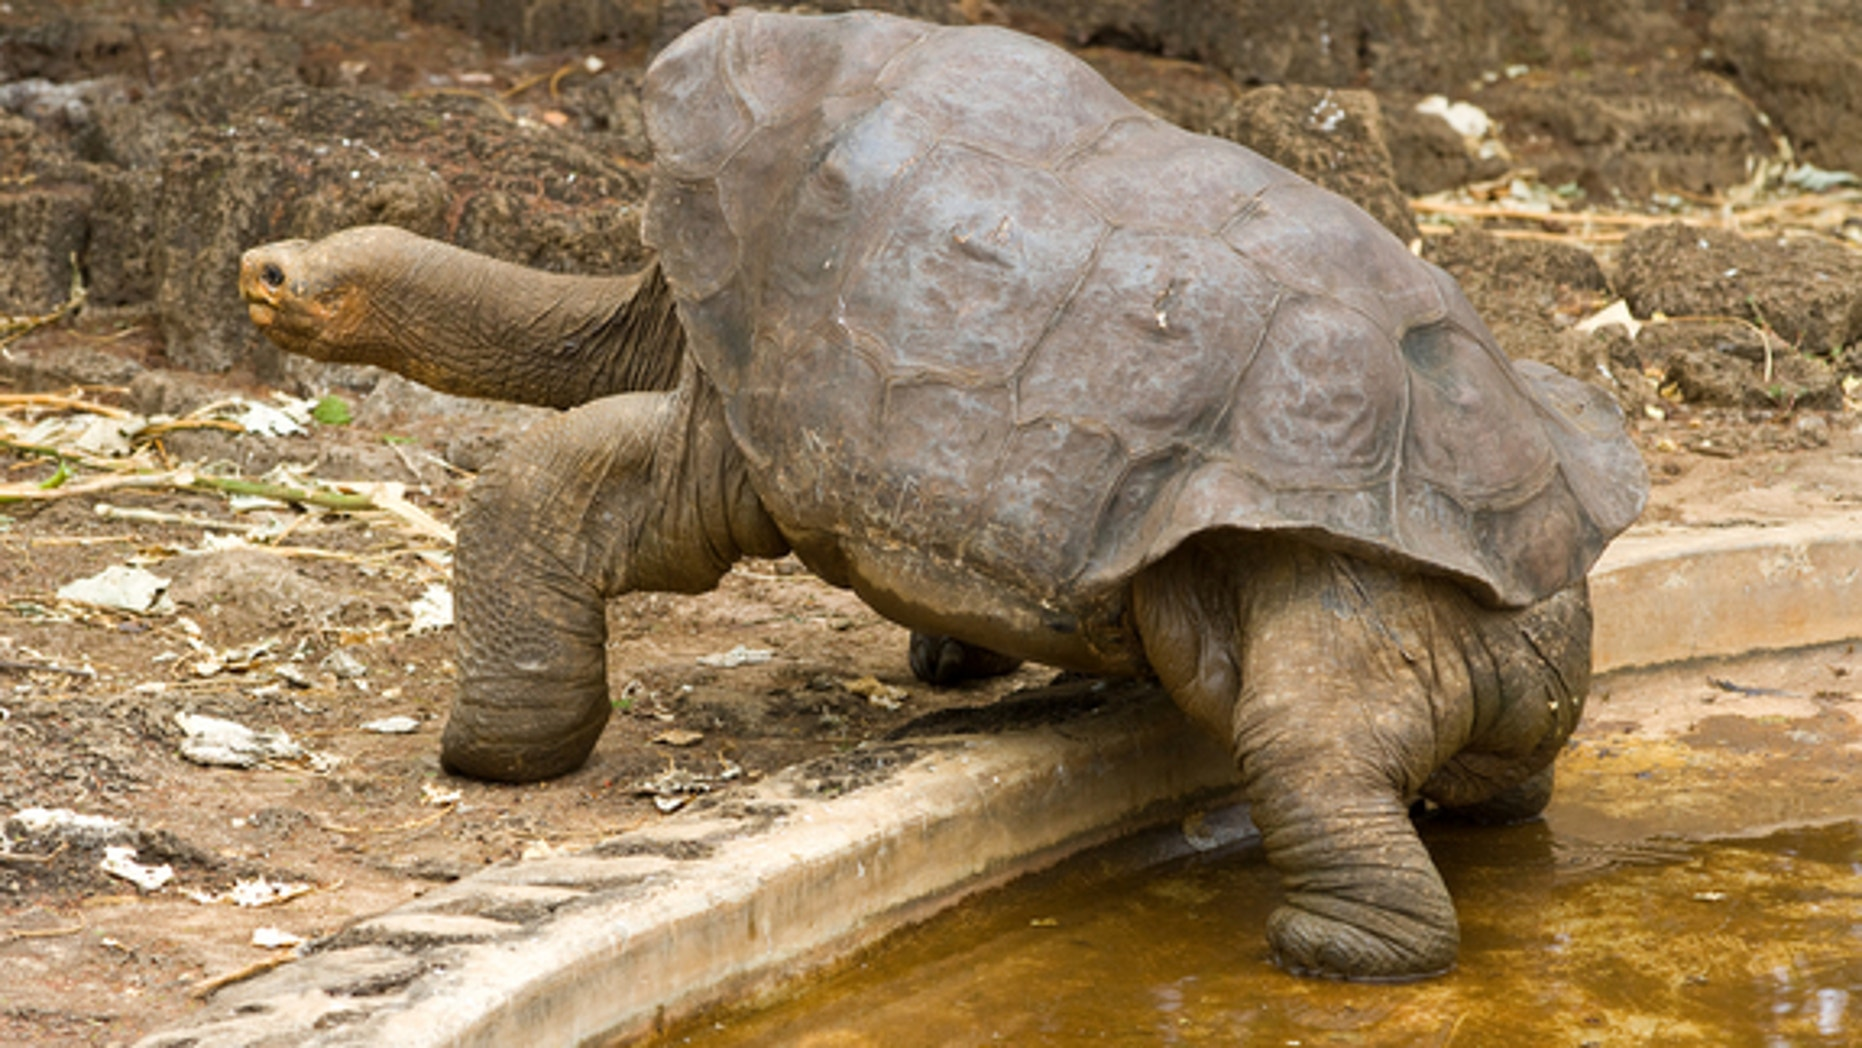 DNA analysis in the Galápagos Islands revealed 17 hybrid tortoises that can trace ancestry to Chelonoidis abingdoni, the species thought to have gone extinct with the death of Lonesome George this summer.